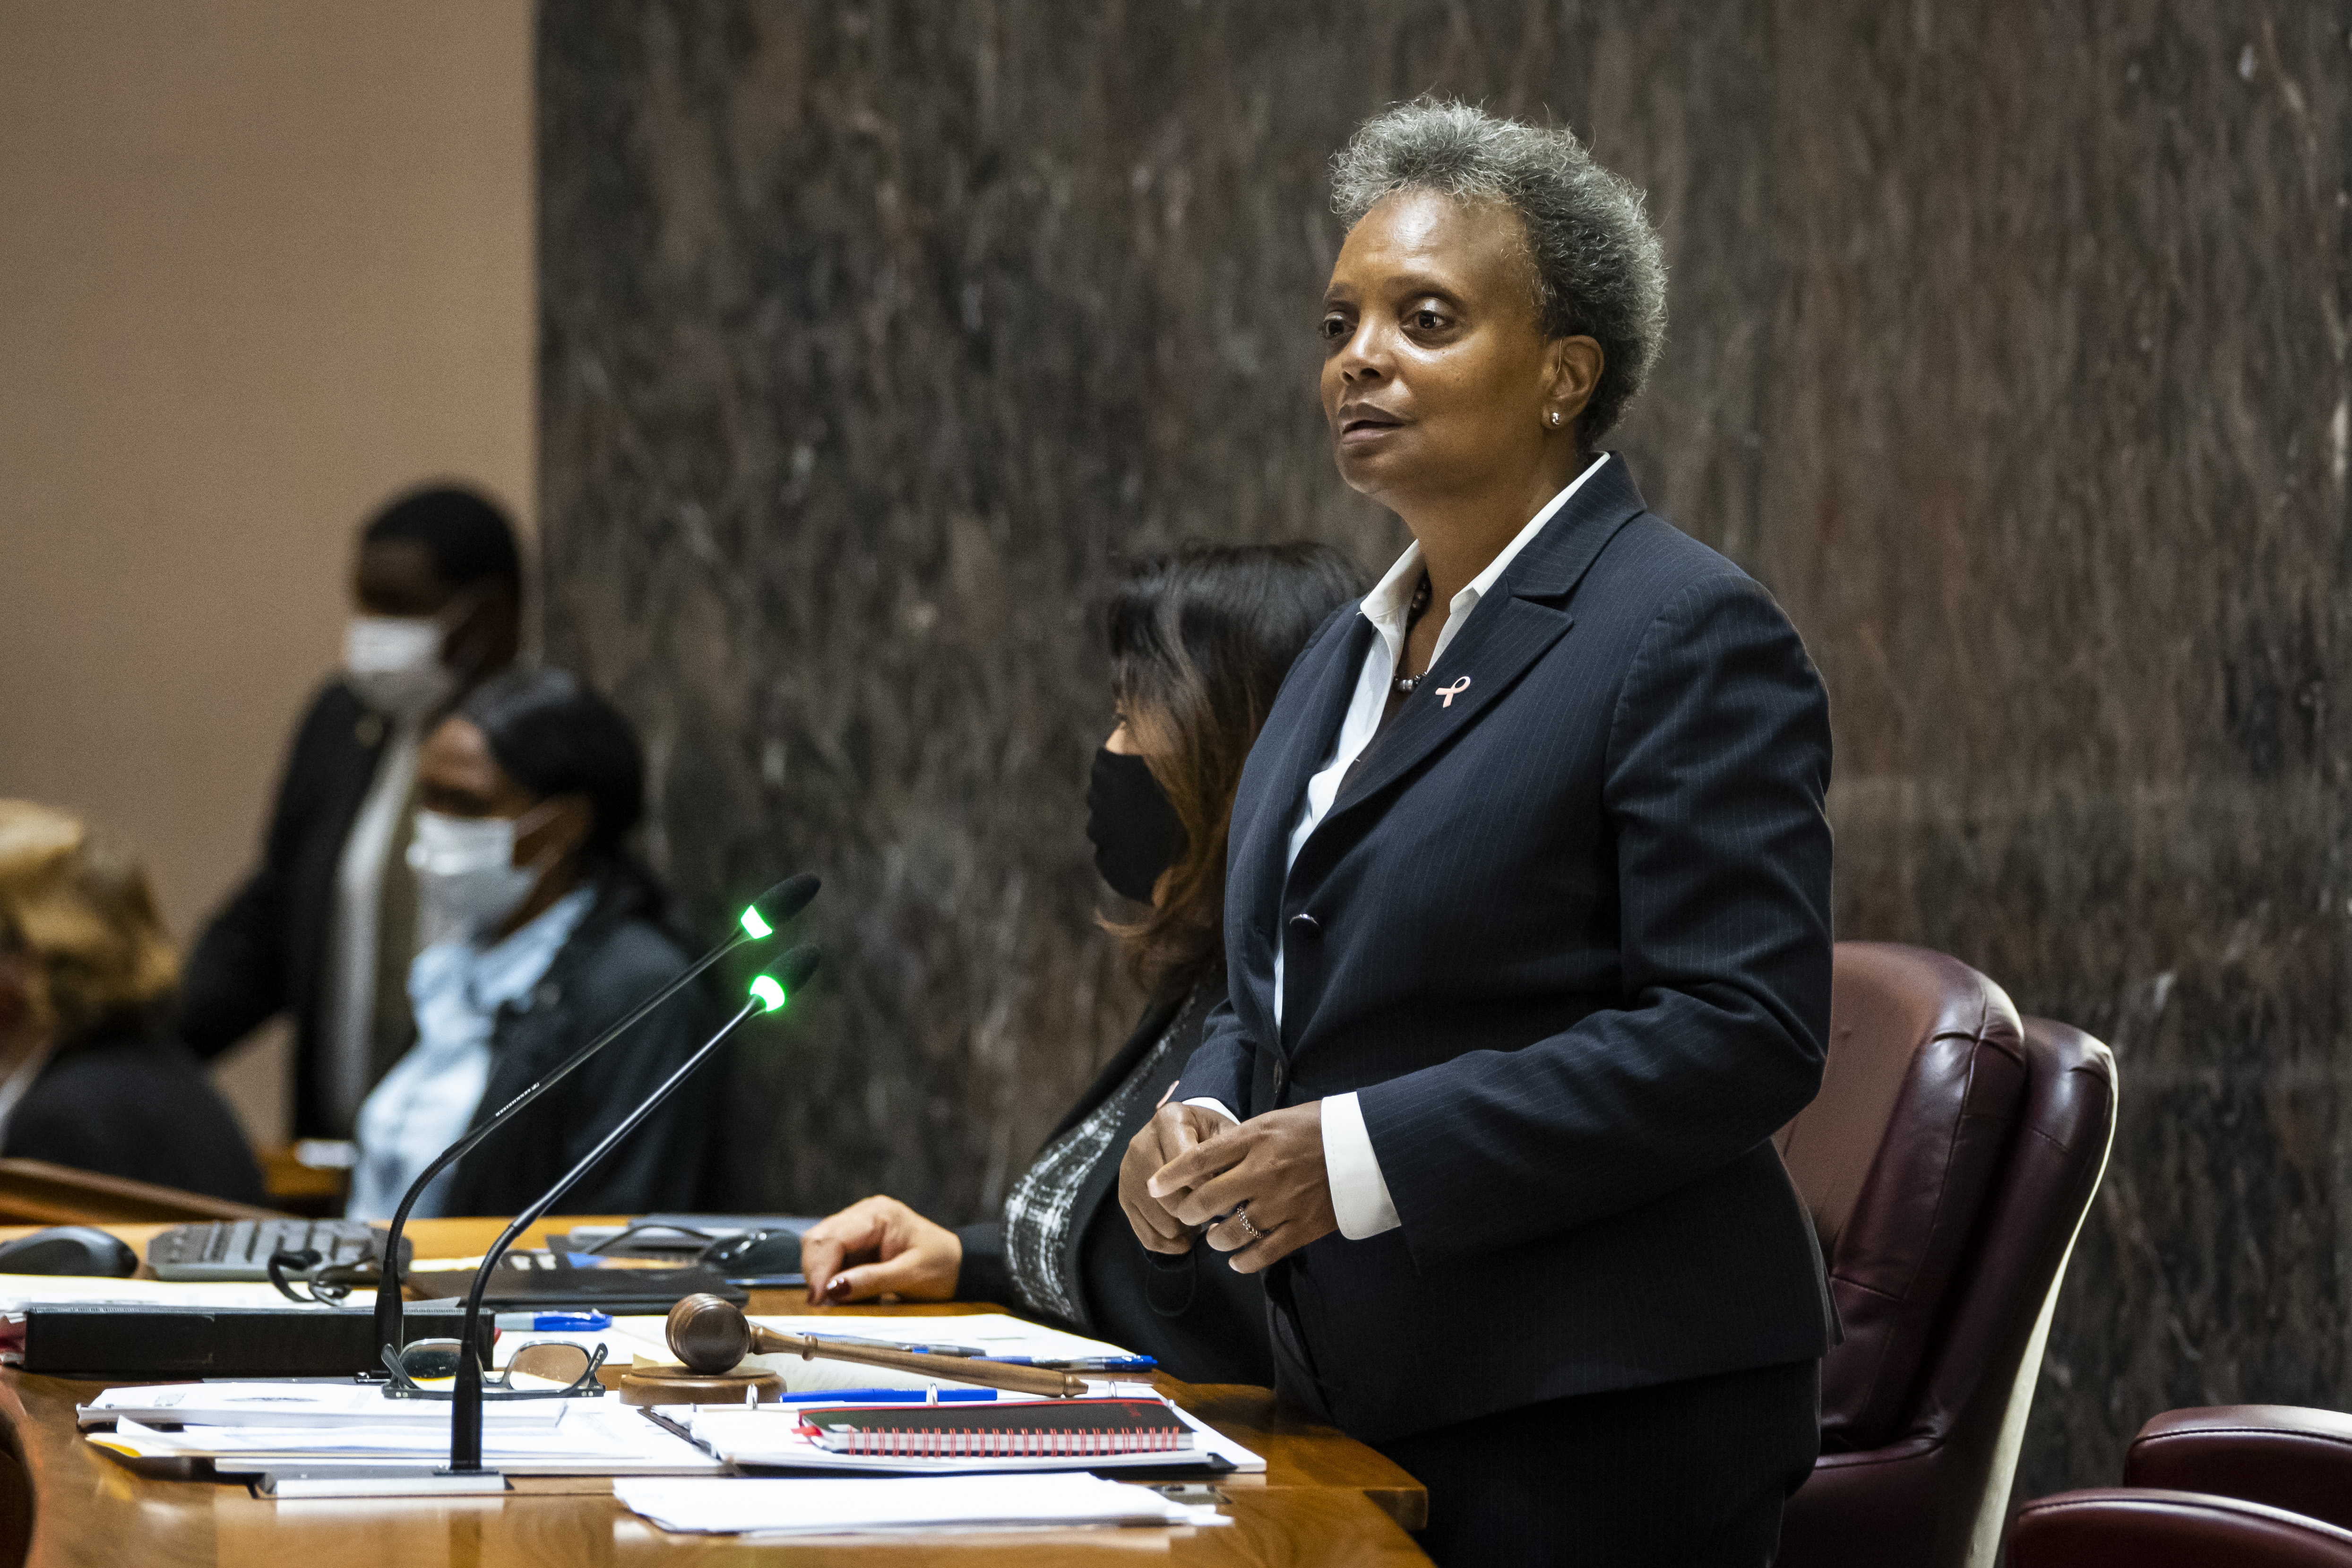 Mayor Lori Lightfoot presides over a Chicago City Council meeting last week.